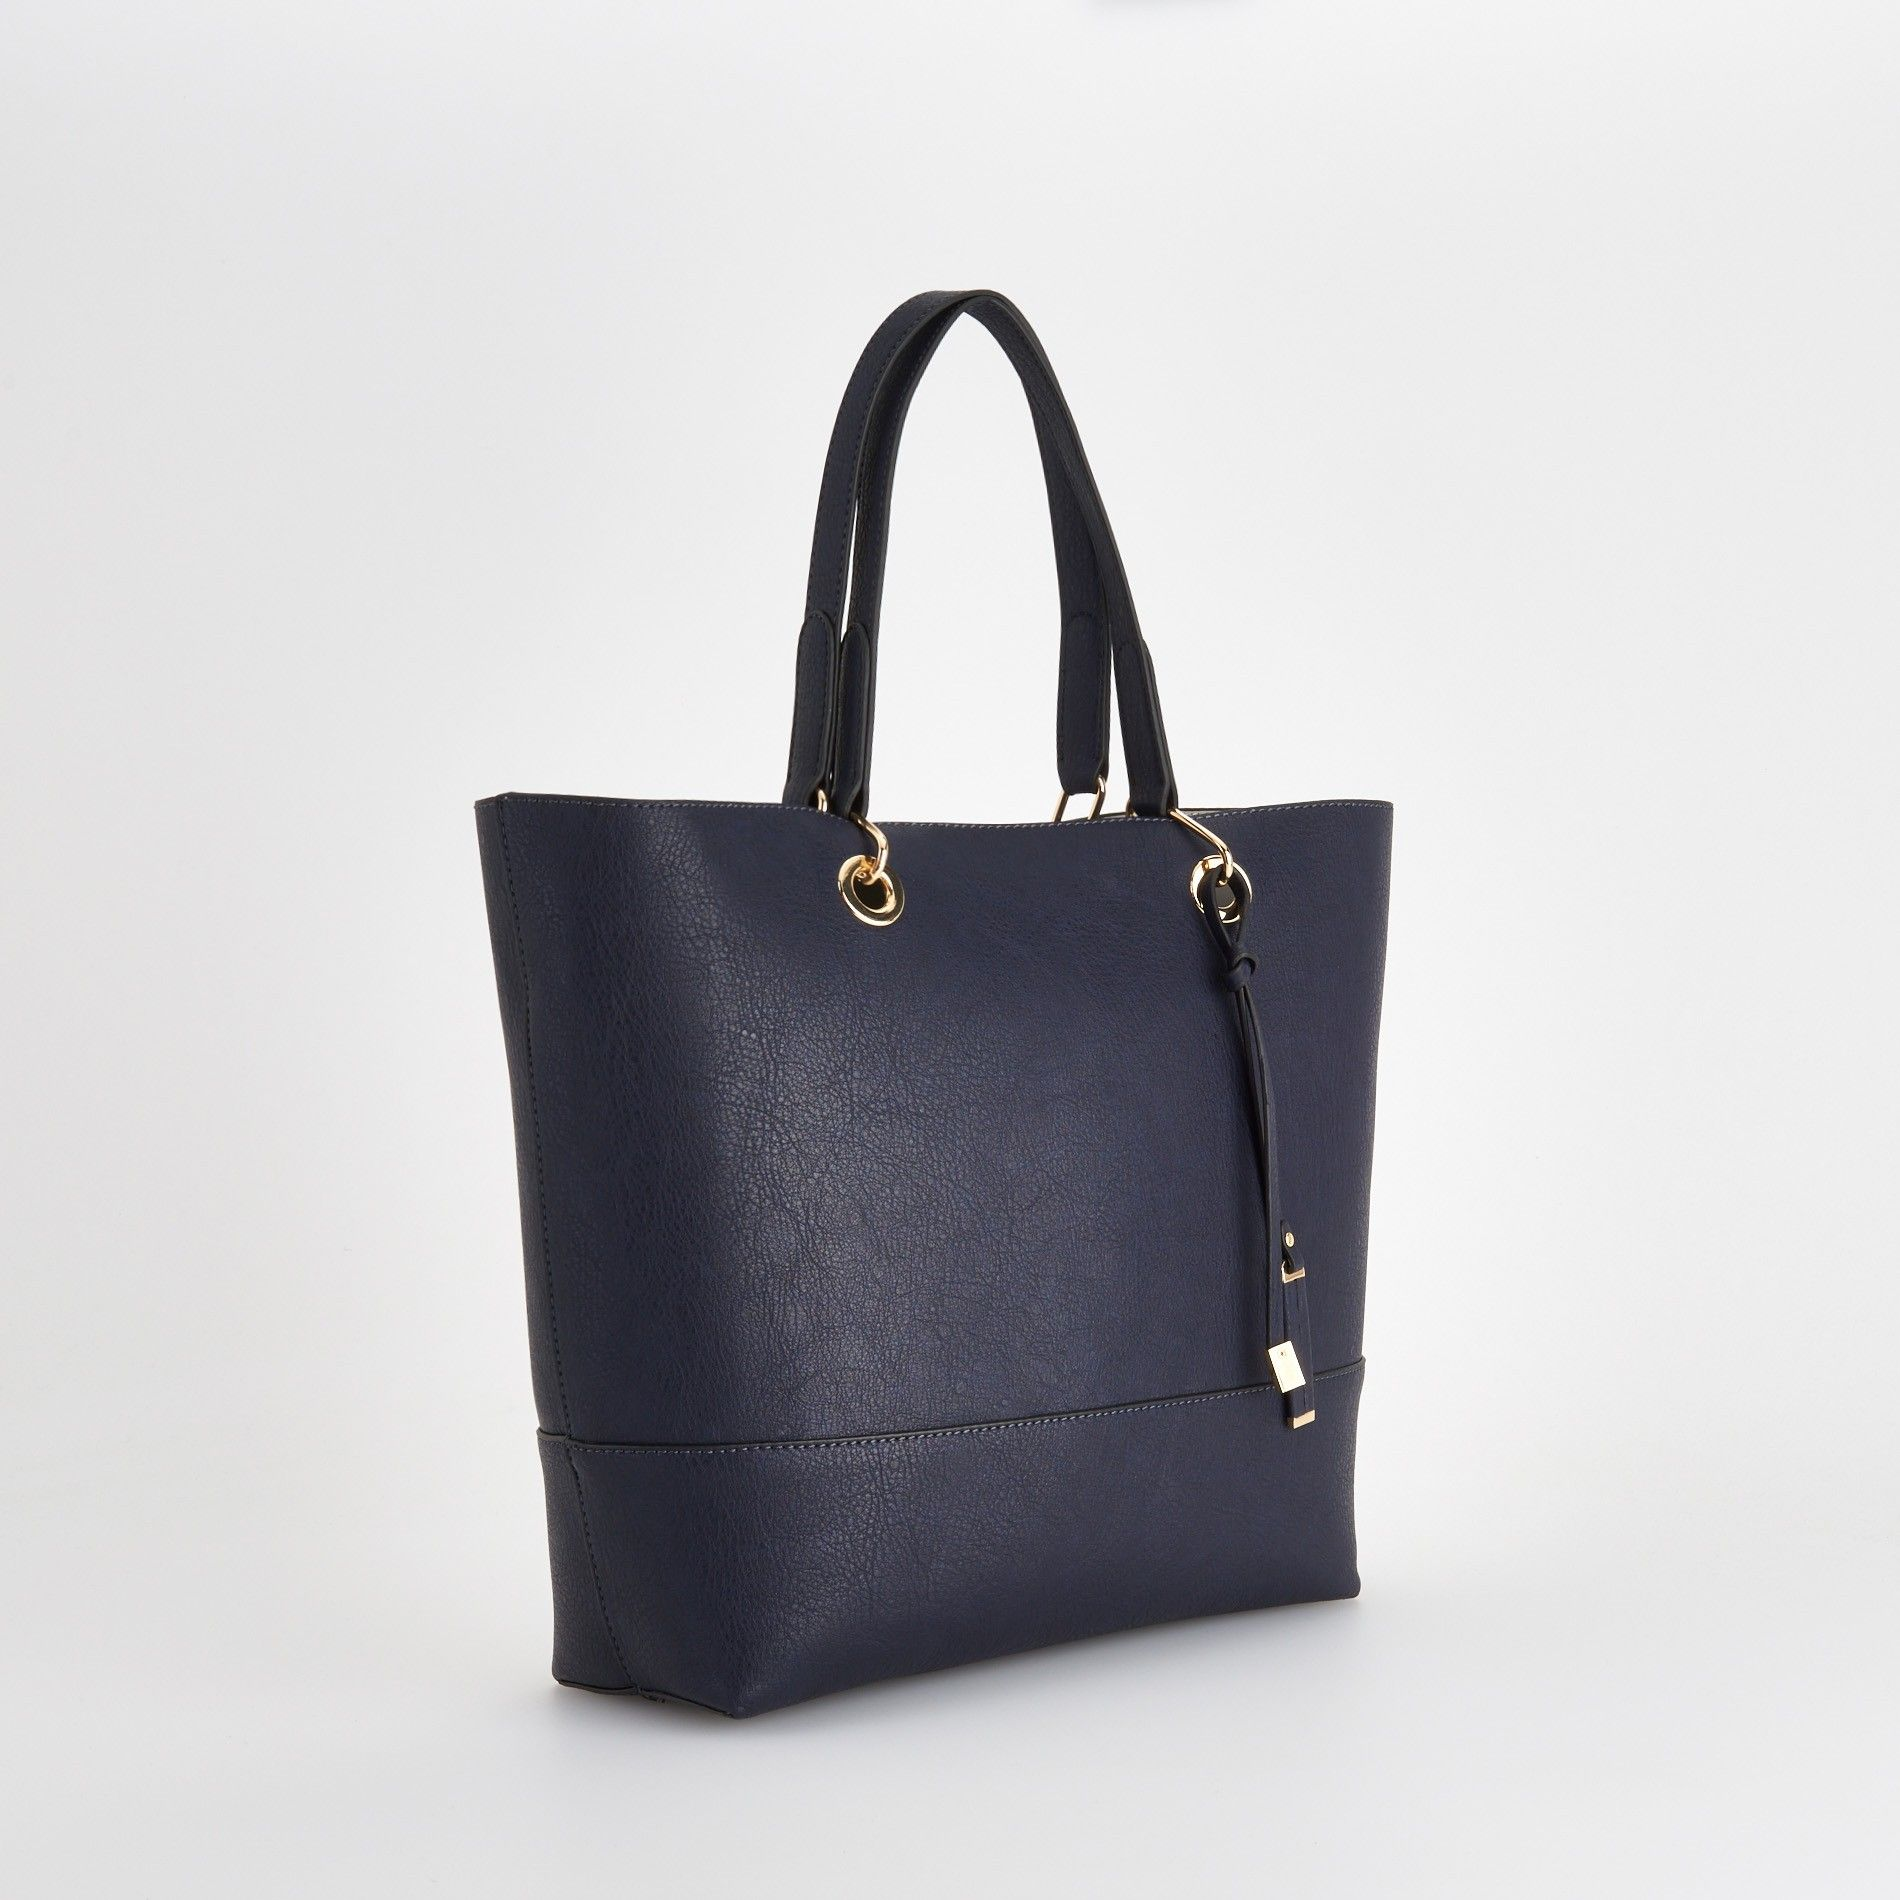 http://www.reserved.com/pl/pl/woman/all-1/accessories/bags/pu275-59x/shopper-bag